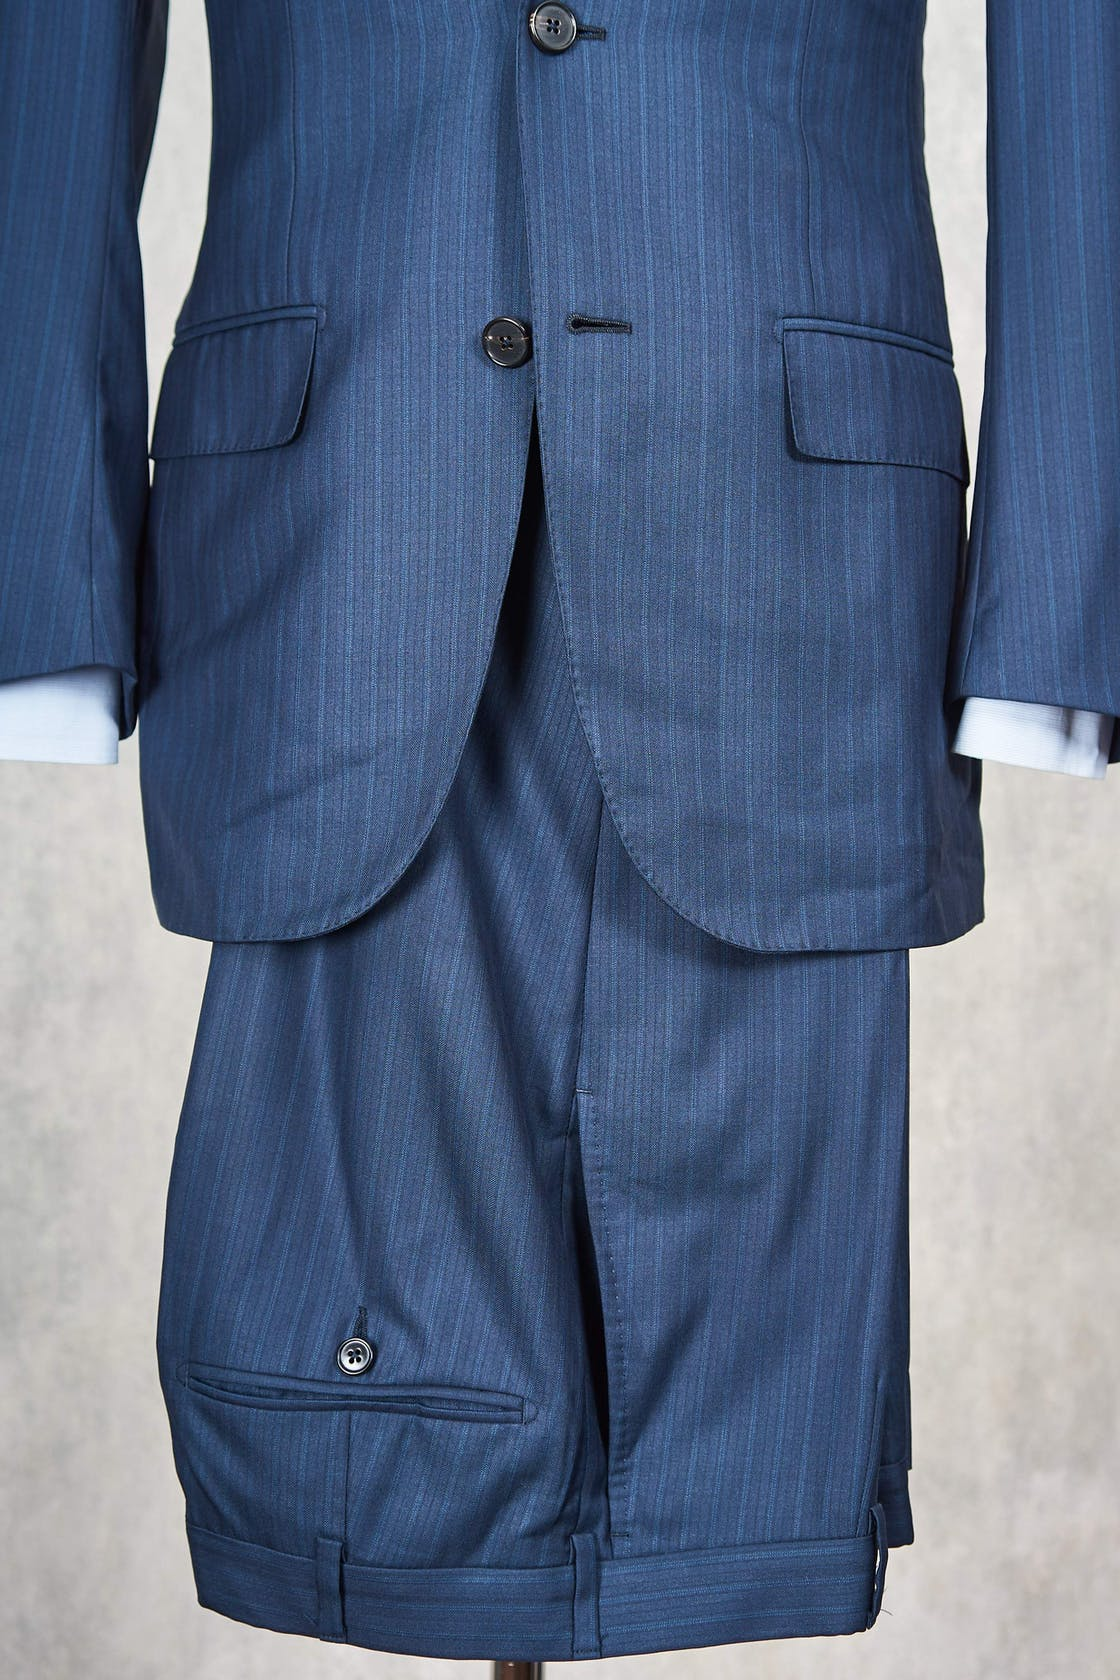 Ermenegildo Zegna 'Su Misura' Navy Mini Herringbone Silk Wool Suit